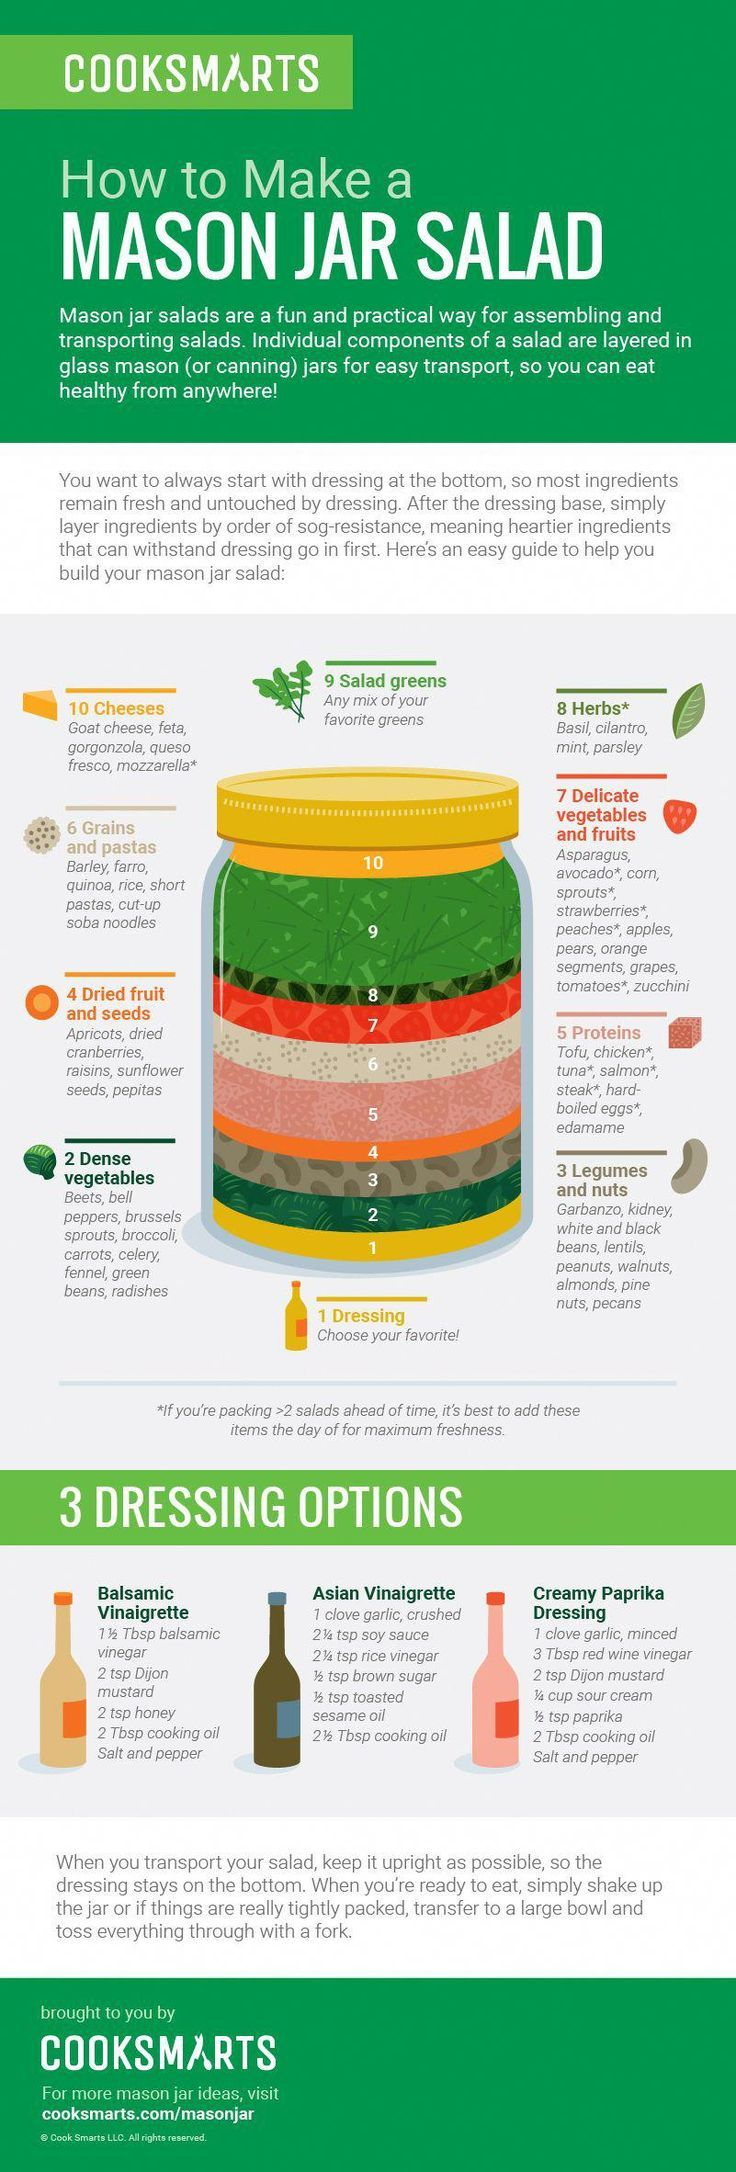 Take a simple healthy meal anywhere you go with our howto on mason jar salads Take a simple healthy meal anywhere you go with our howto on mason jar salads